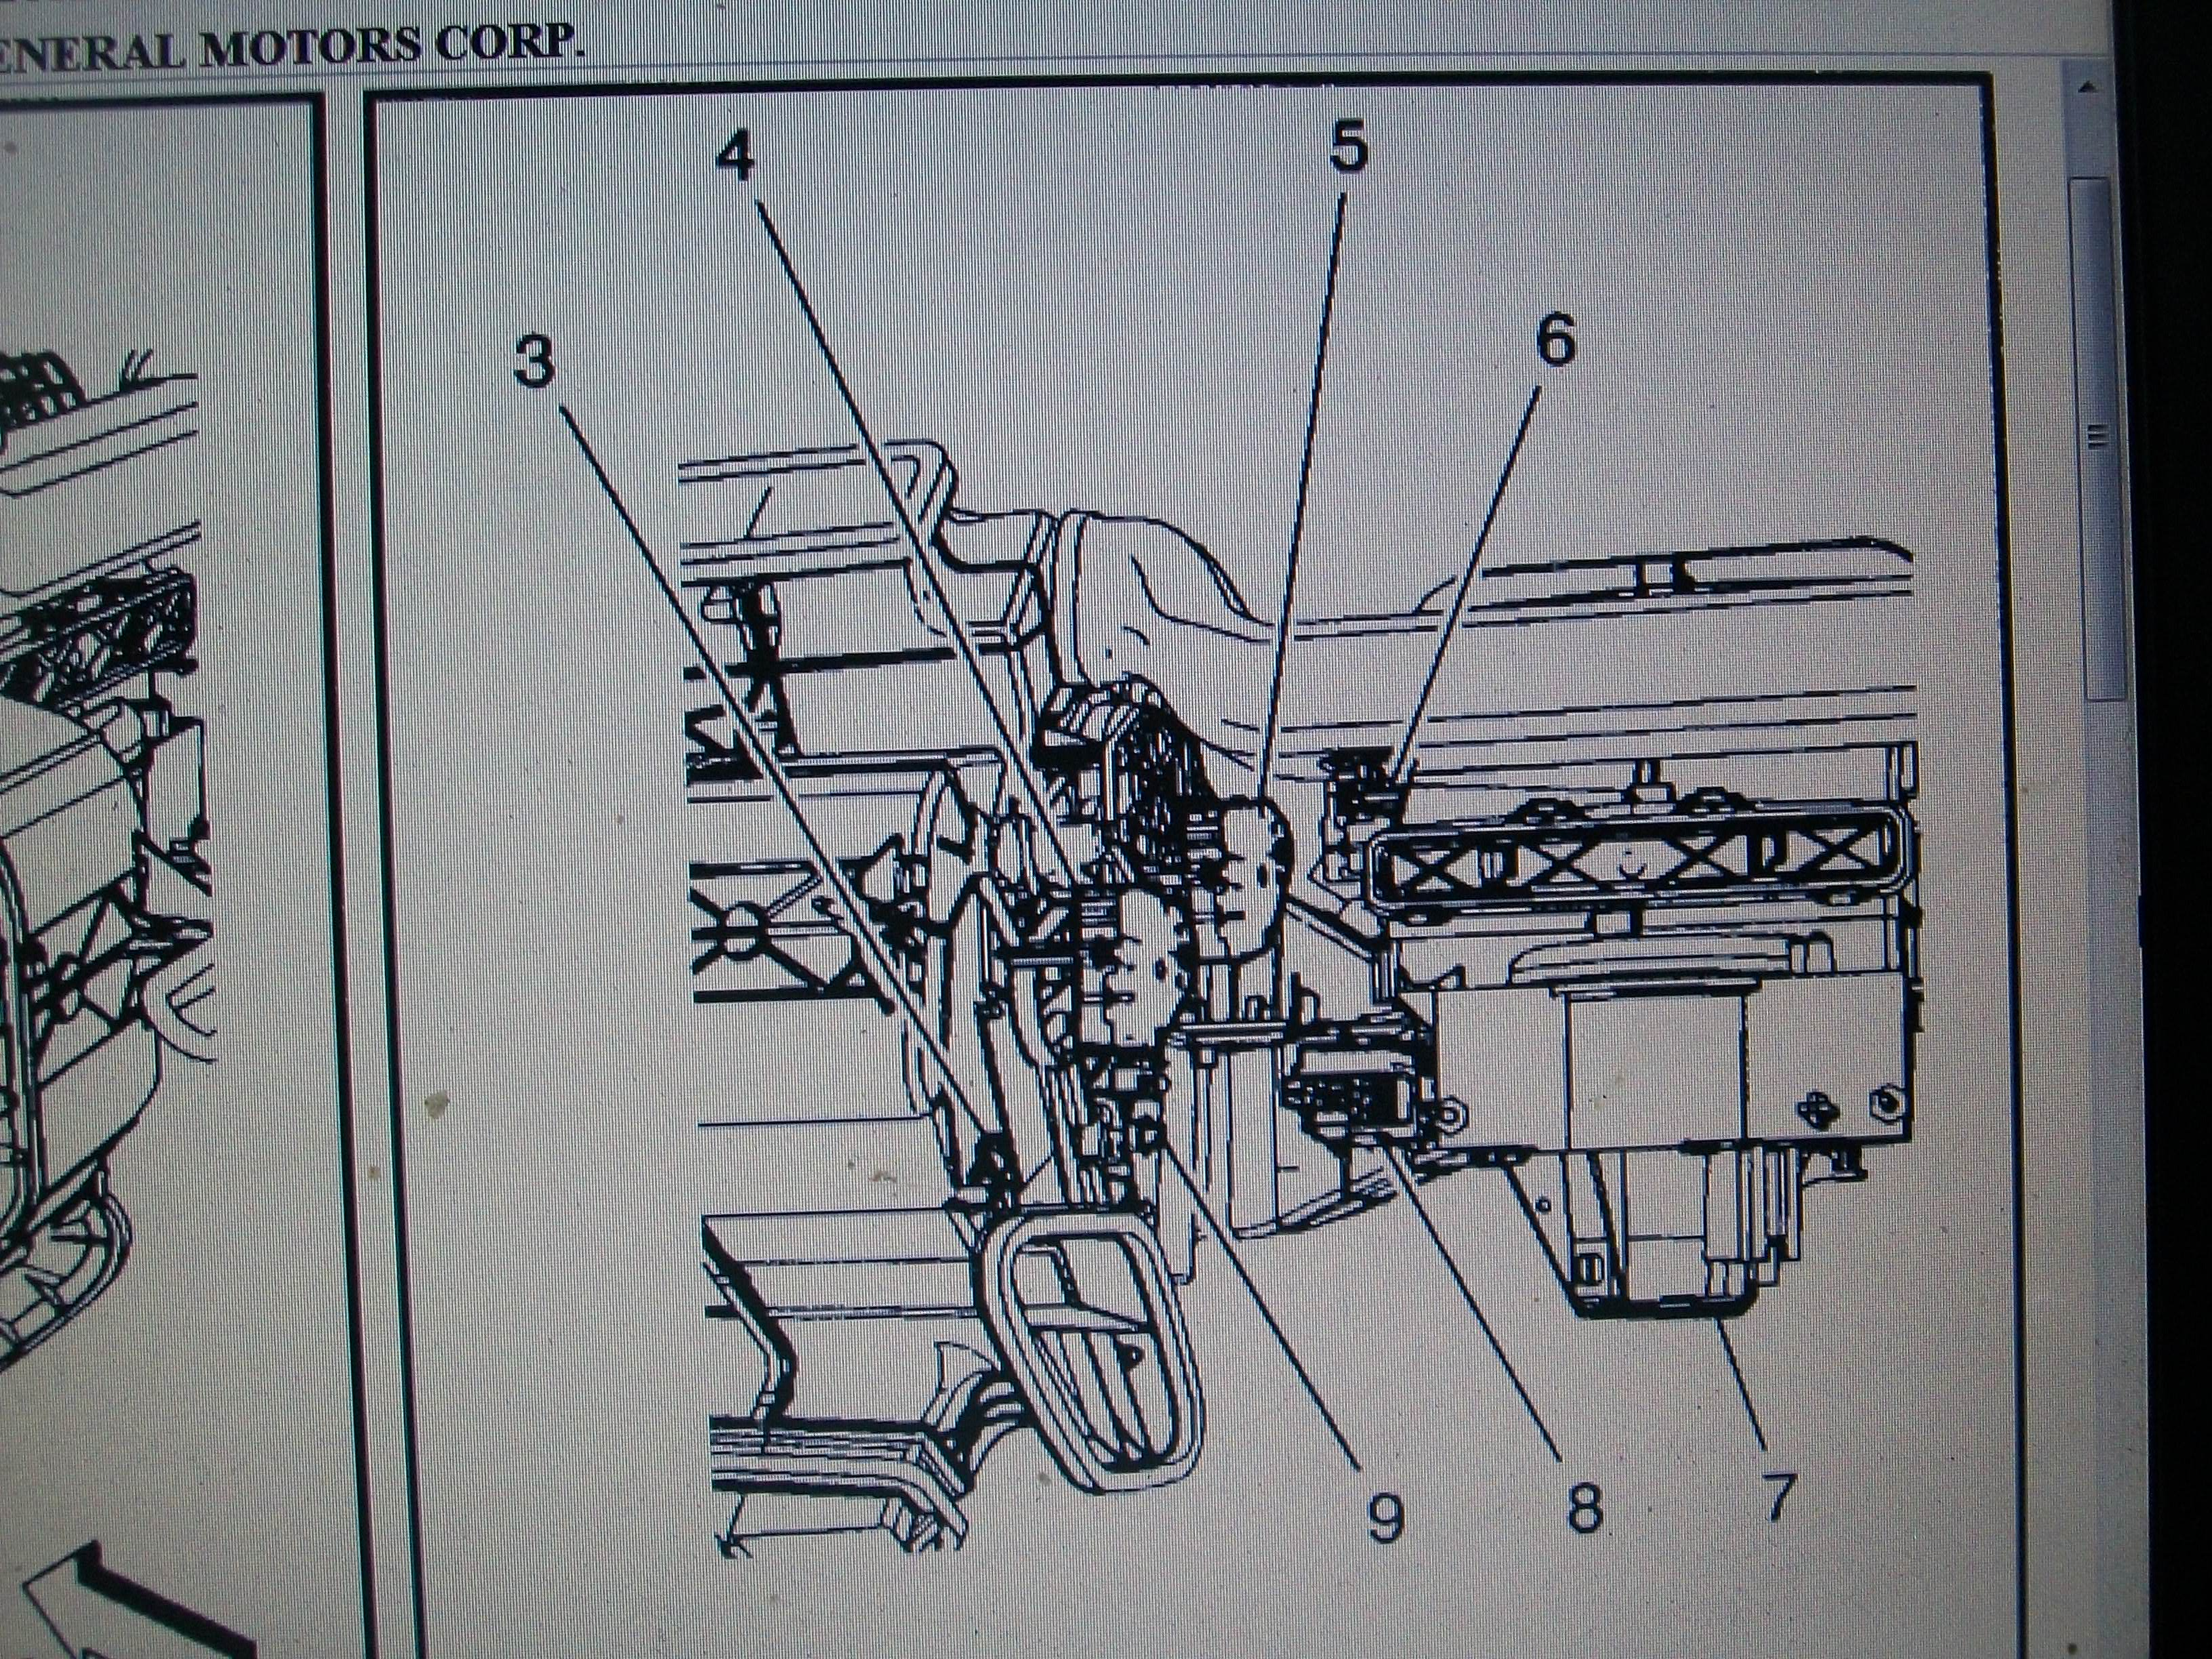 Wiring Diagram For Kia Sorrento 2016 besides T14339127 Replace hvac blower relay chevy cobalt besides Viewit besides Toyota Airbag Sensor Location as well Discussion T30026 ds538617. on 2008 buick lacrosse fuse box diagram